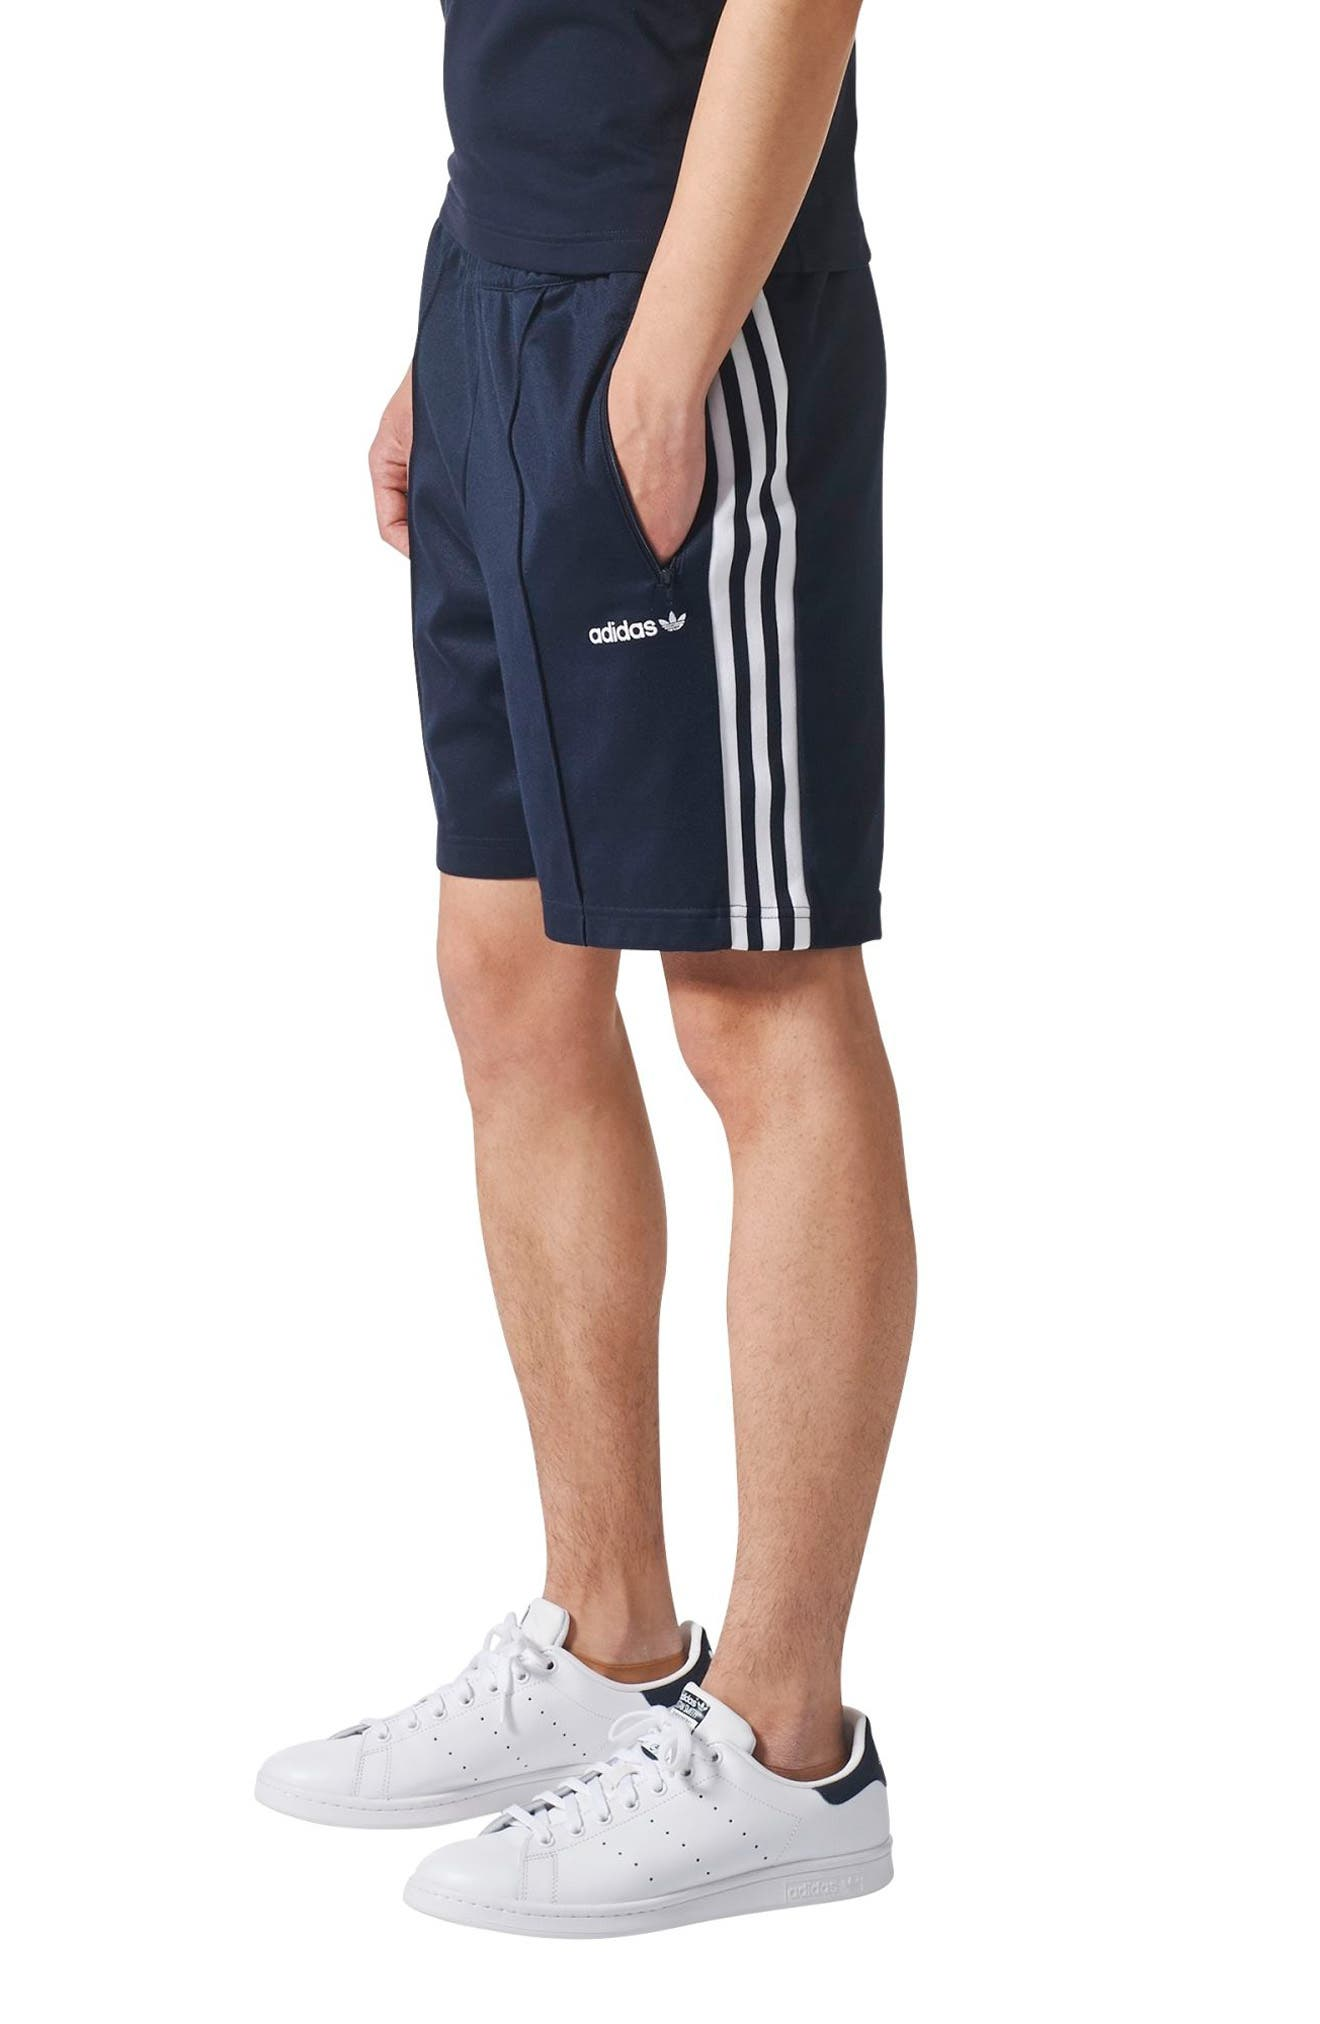 Beckenbauer Shorts,                             Alternate thumbnail 3, color,                             Legend Ink